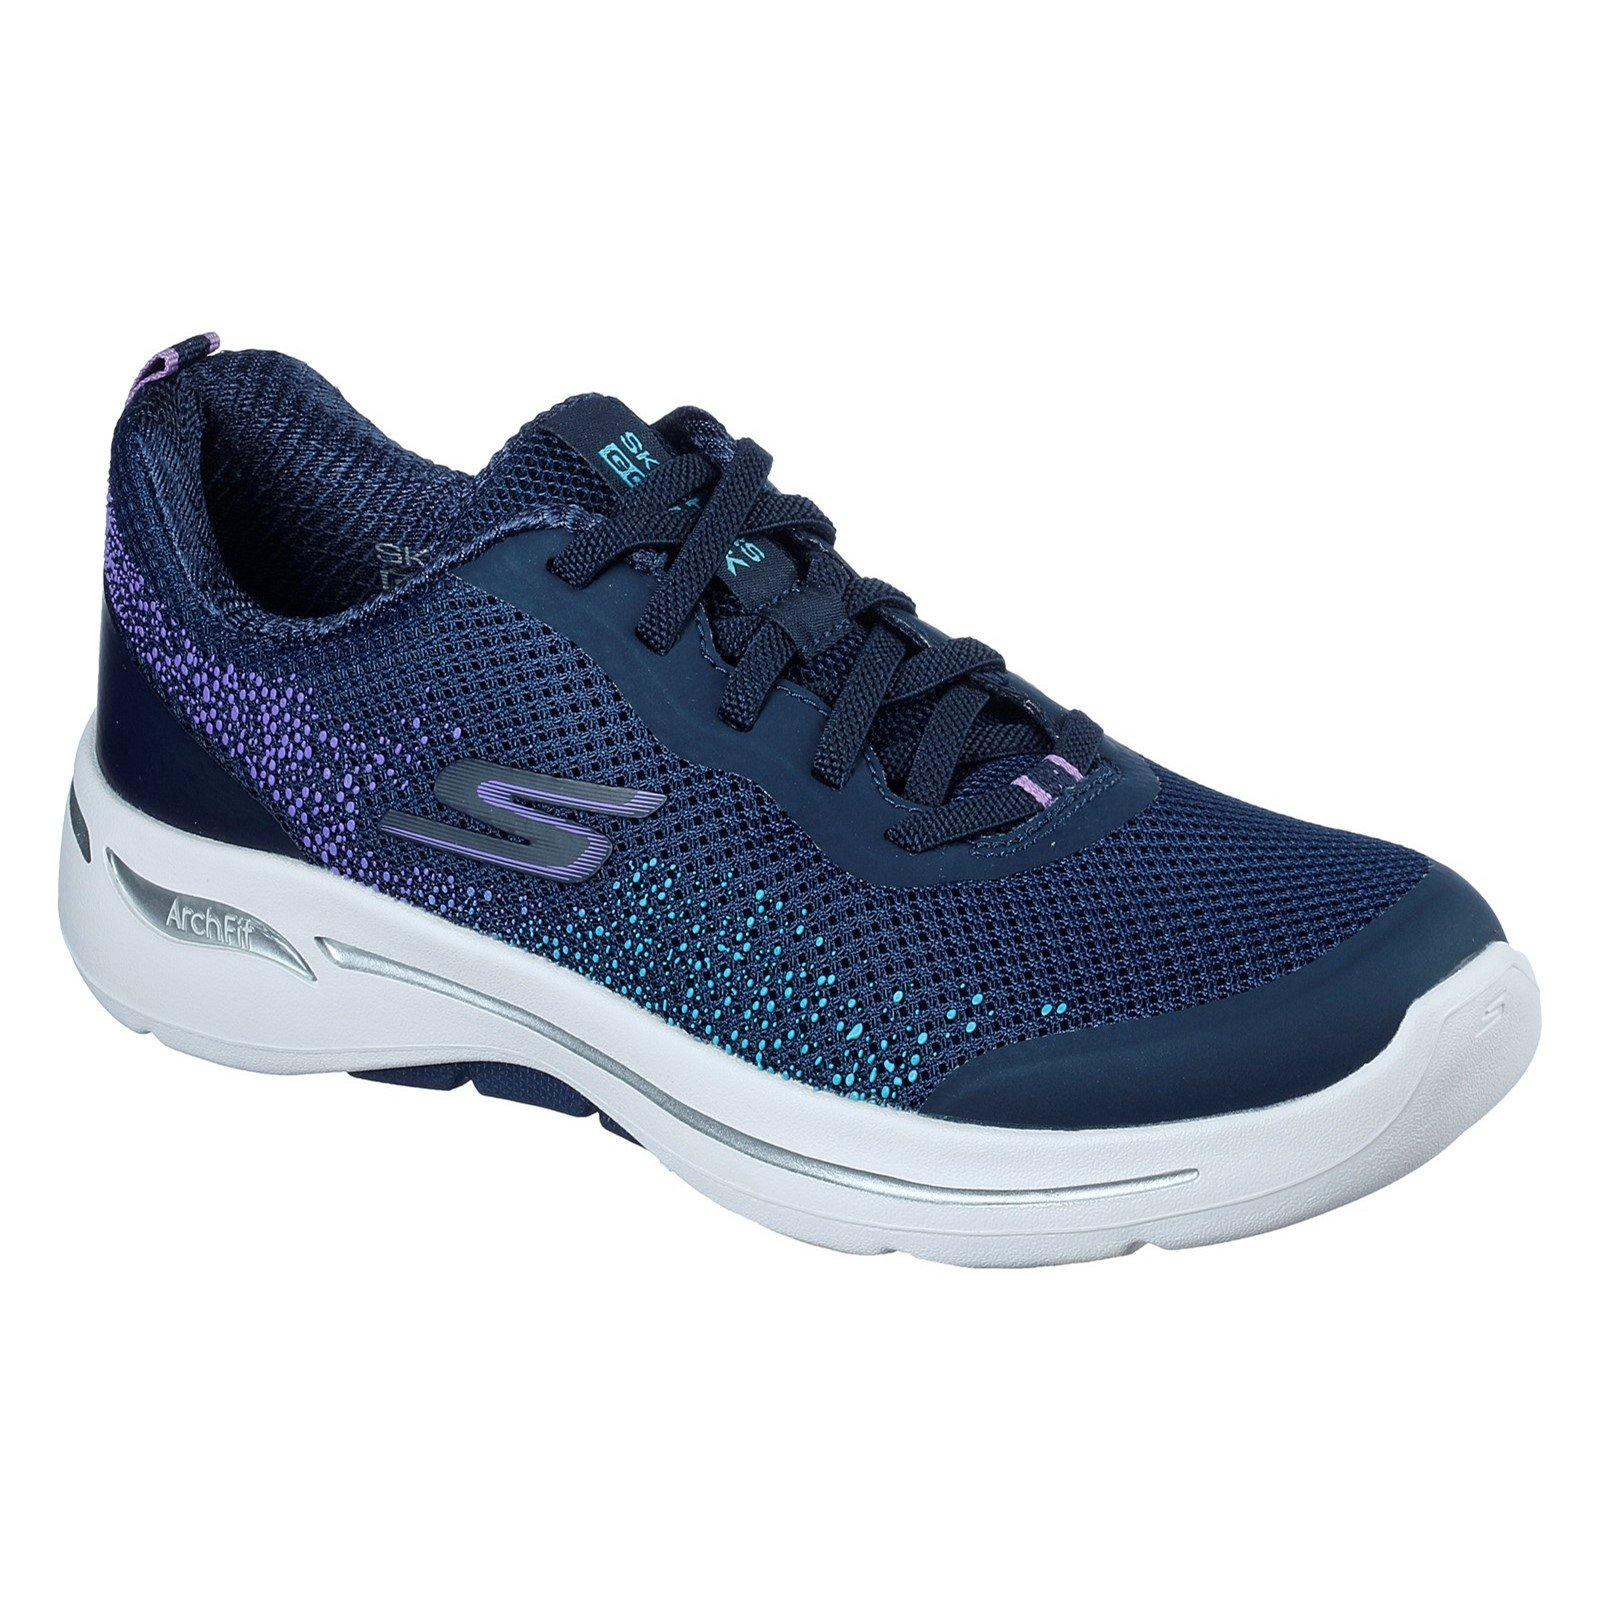 Skechers Women's Go Walk Arch Fit Flying Stars Trainer Various Colours 32841 - Navy/Lavender 8